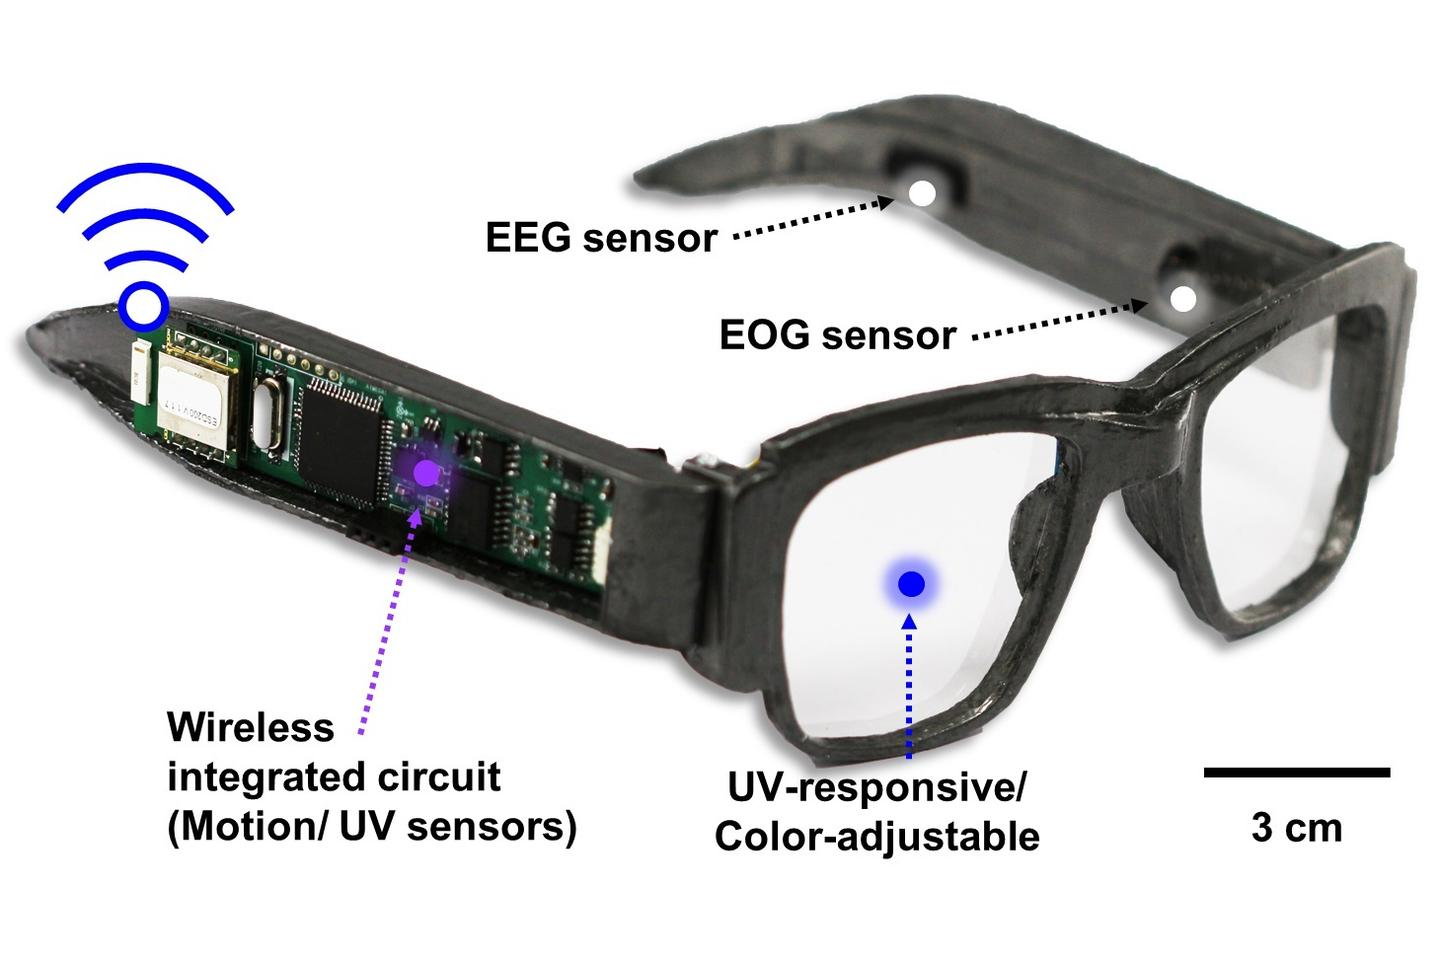 The prototype electronic glasses – there's currently no word on whether they may someday reach production